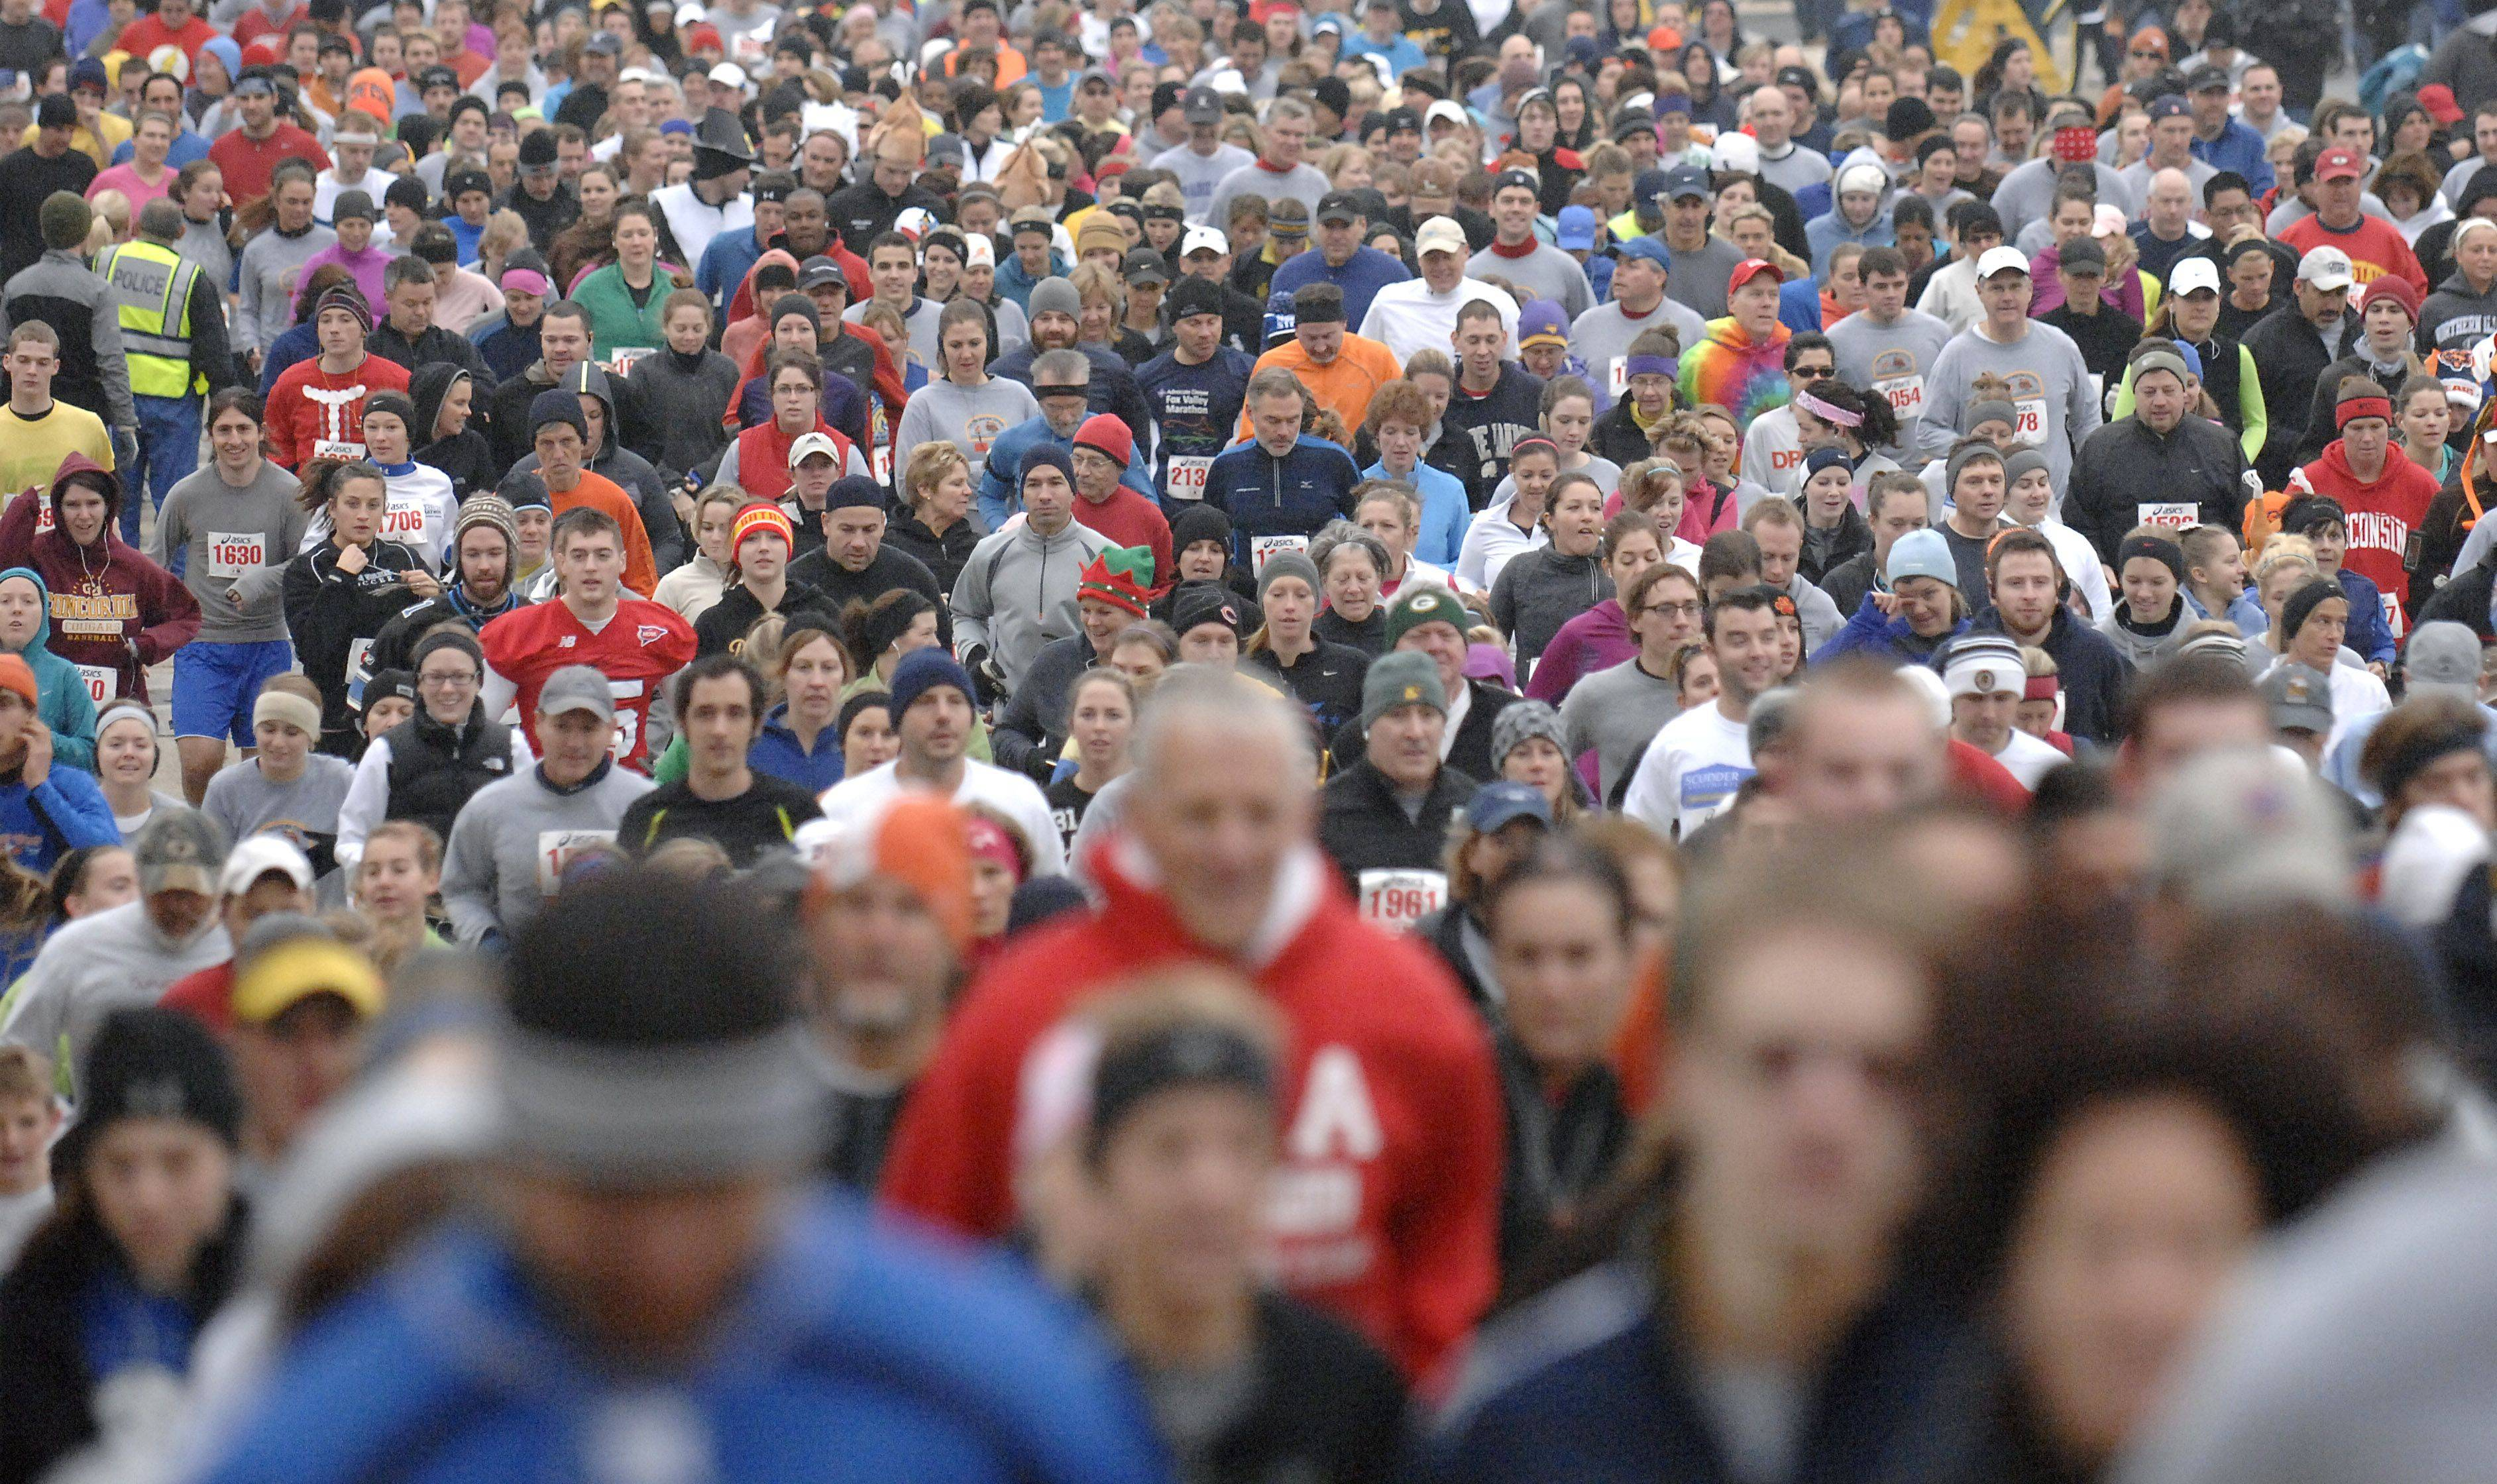 More than 1,700 participants take off for the start of the 15th annual Fox and the Turkey 4-Mile race Thursday morning in Batavia.